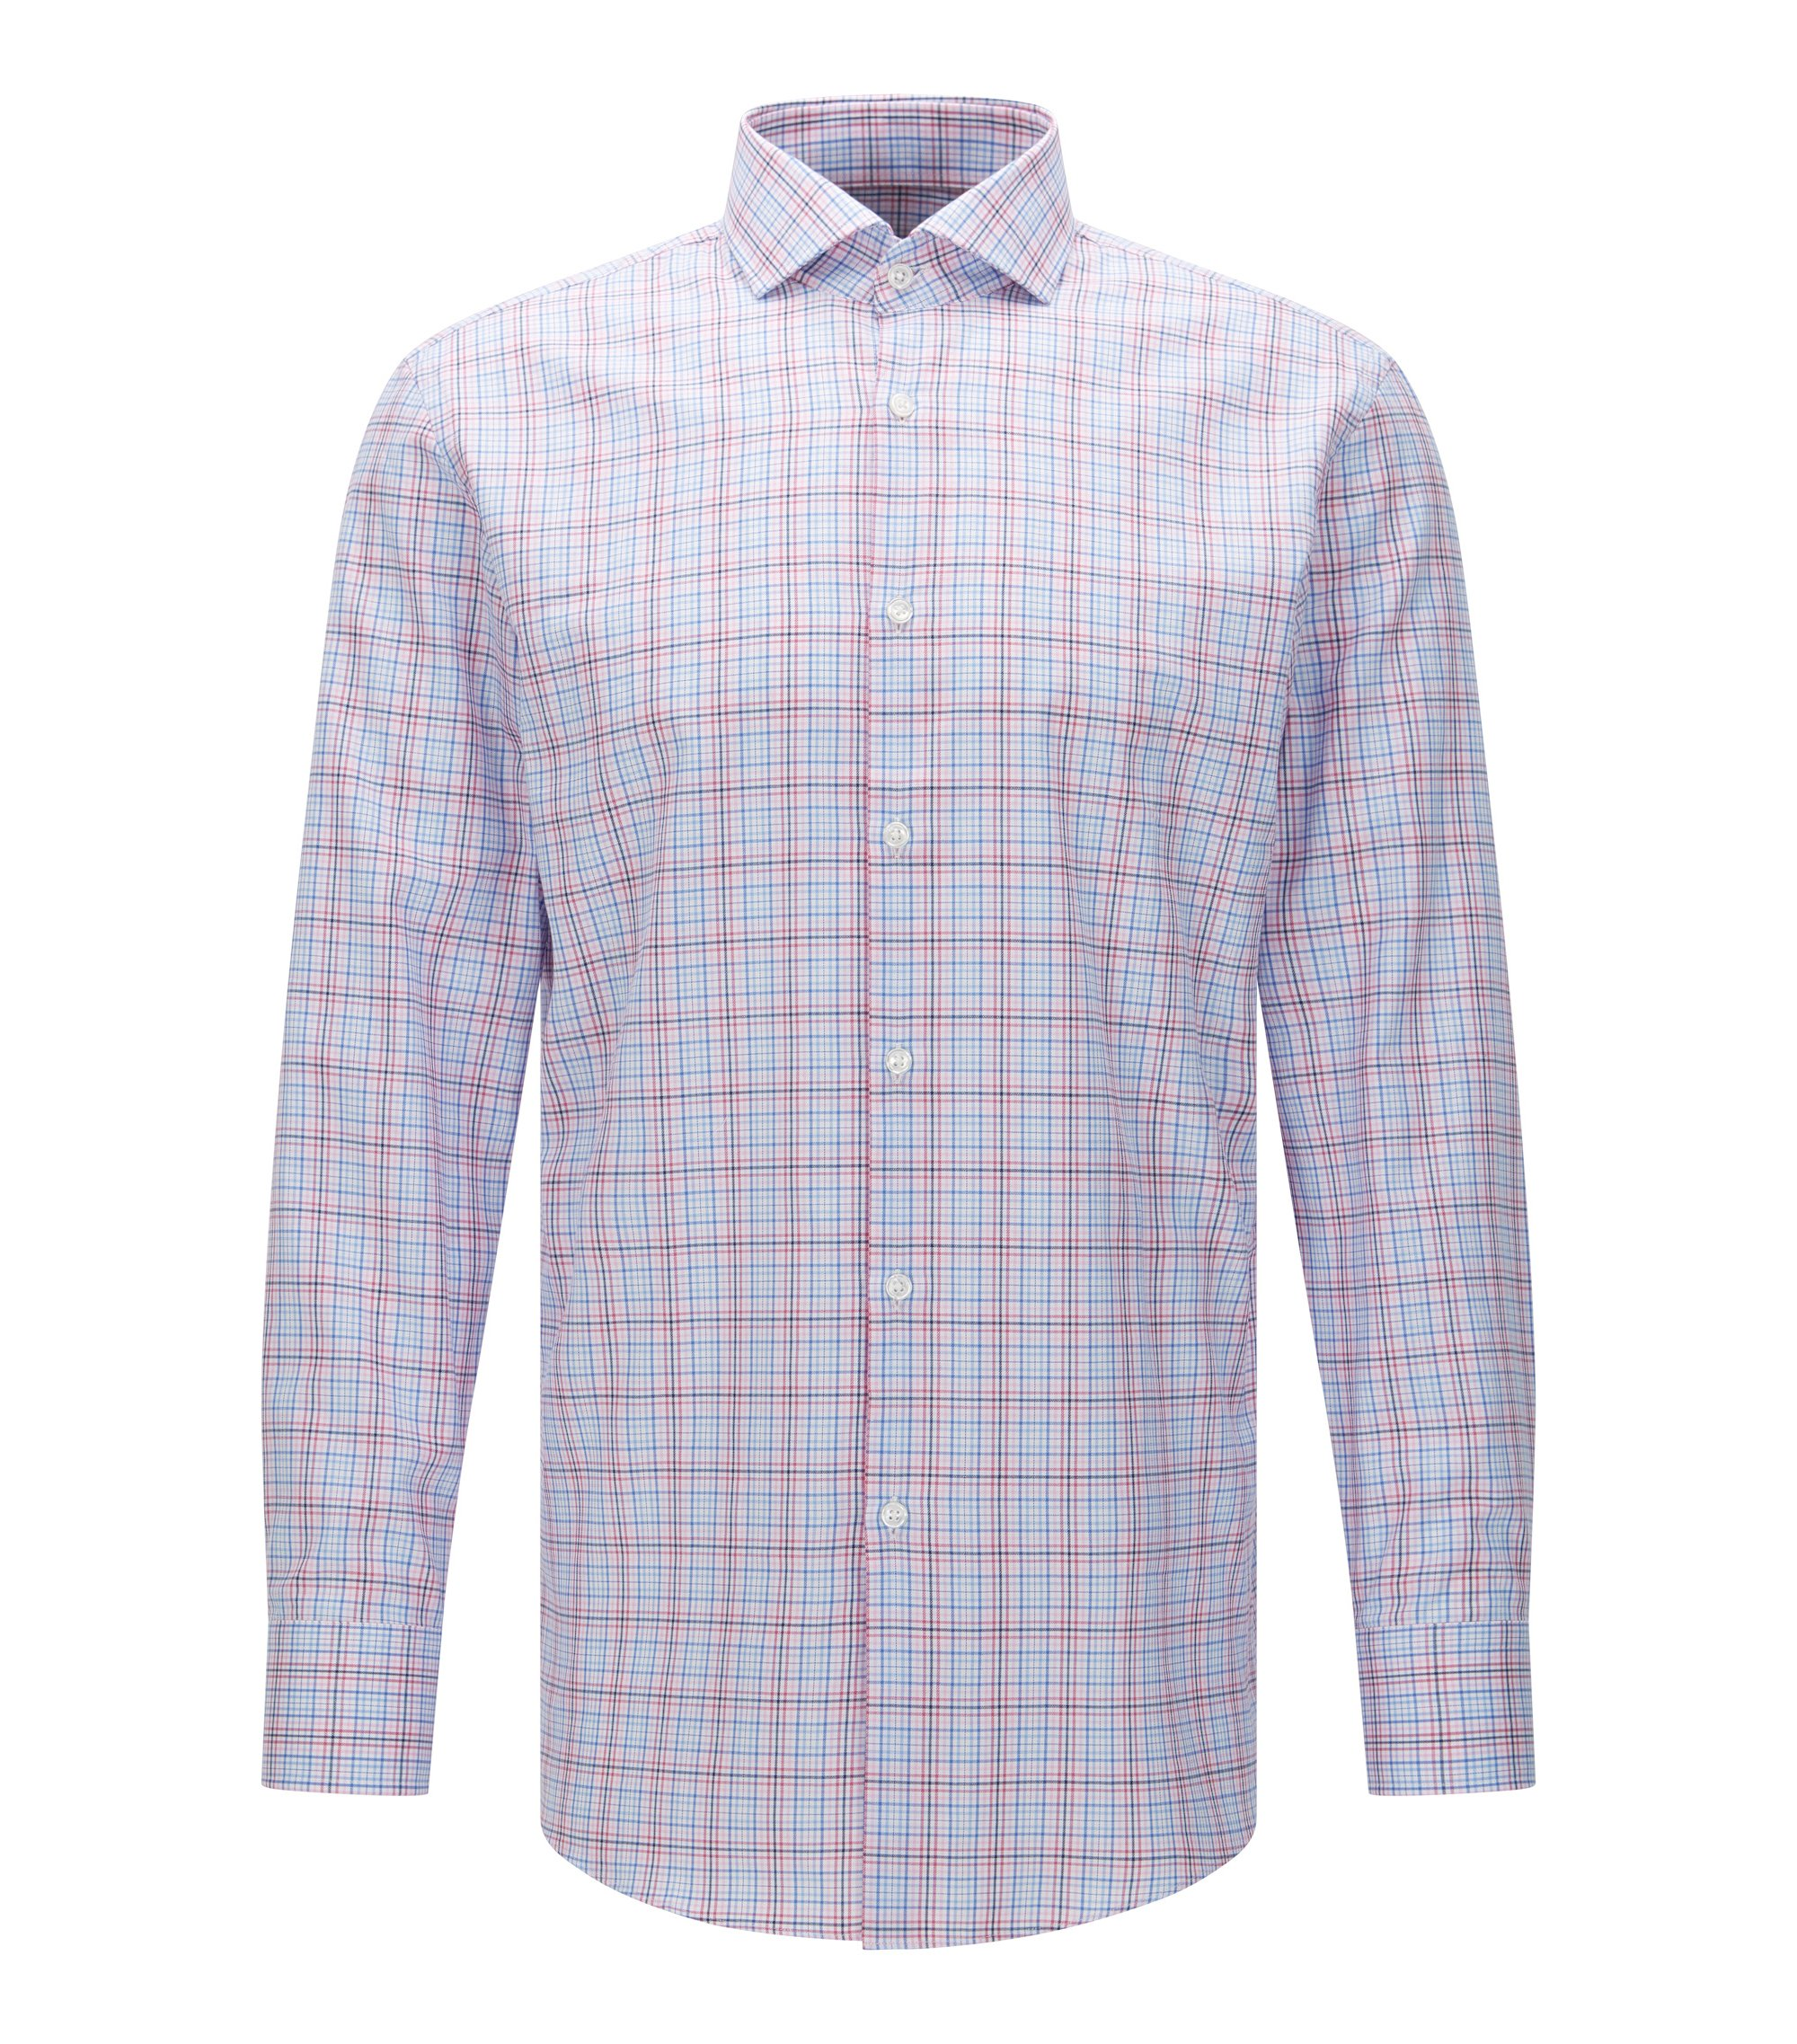 Plaid Cotton Dress Shirt, Sharp Fit | Mark US, Pink